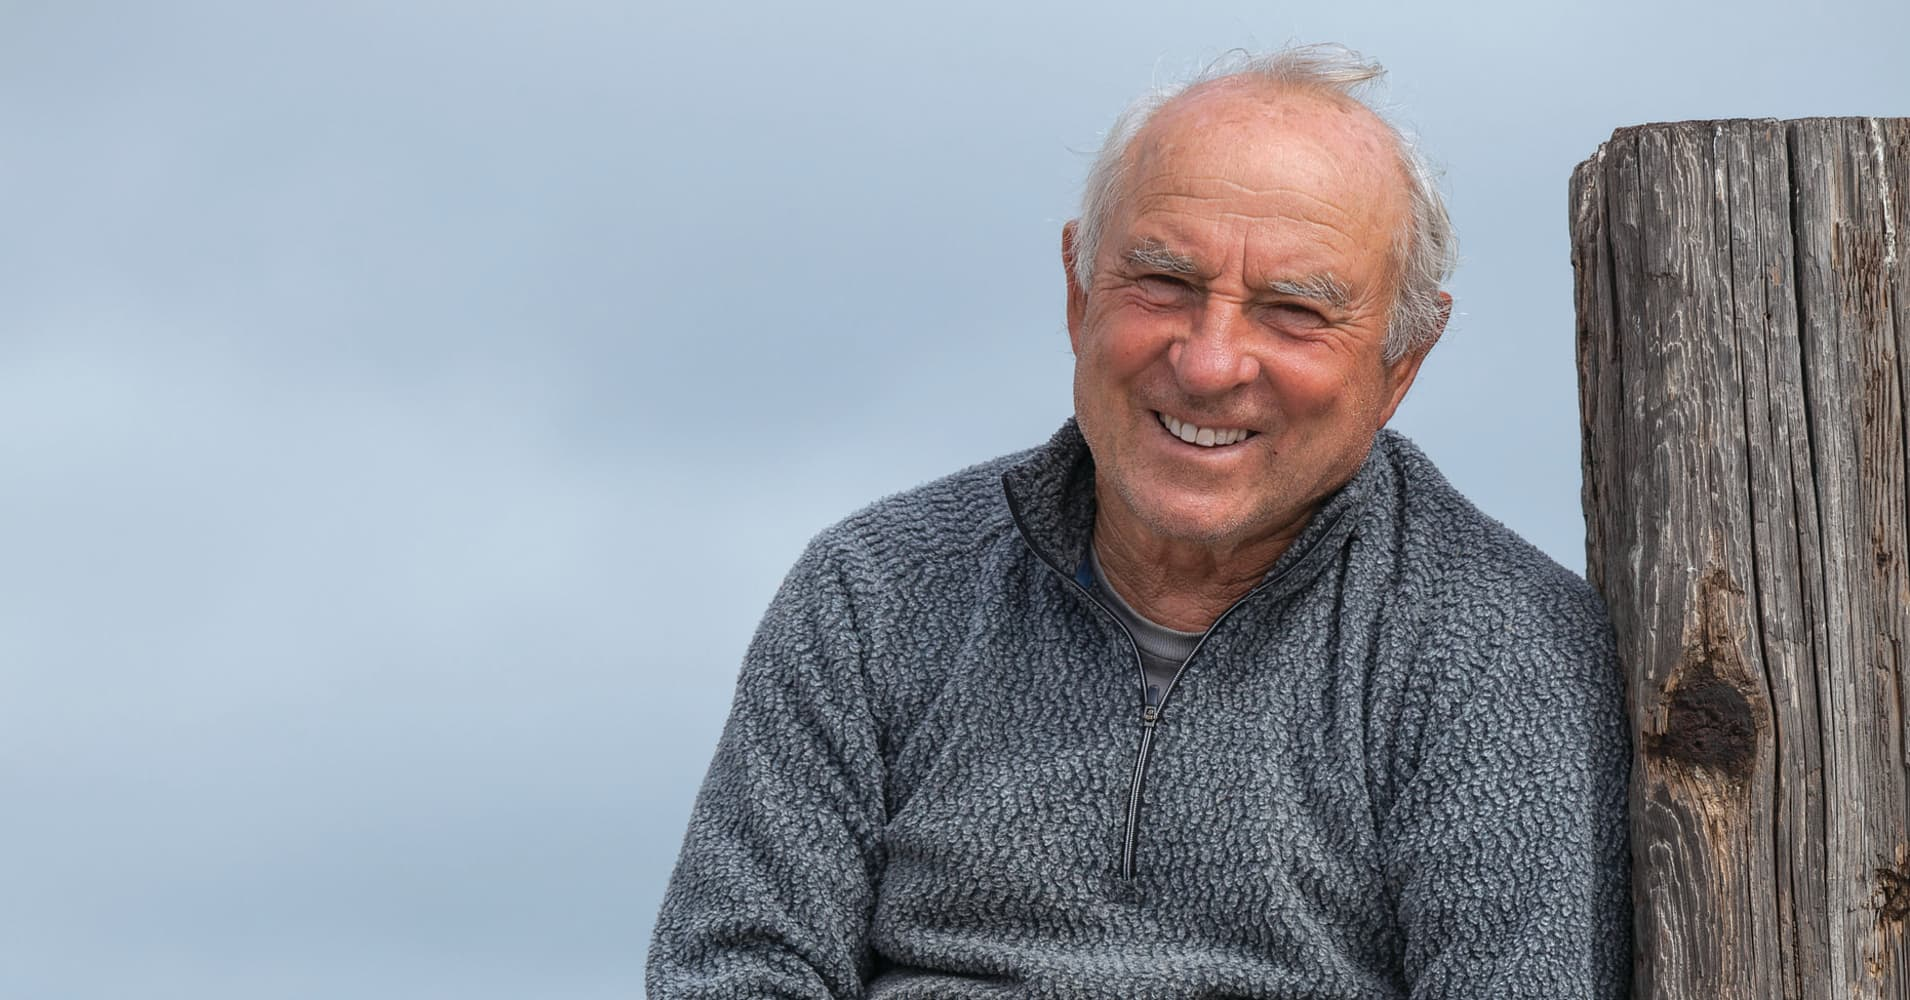 Yvon Chouinard, founder and owner of Patagonia.